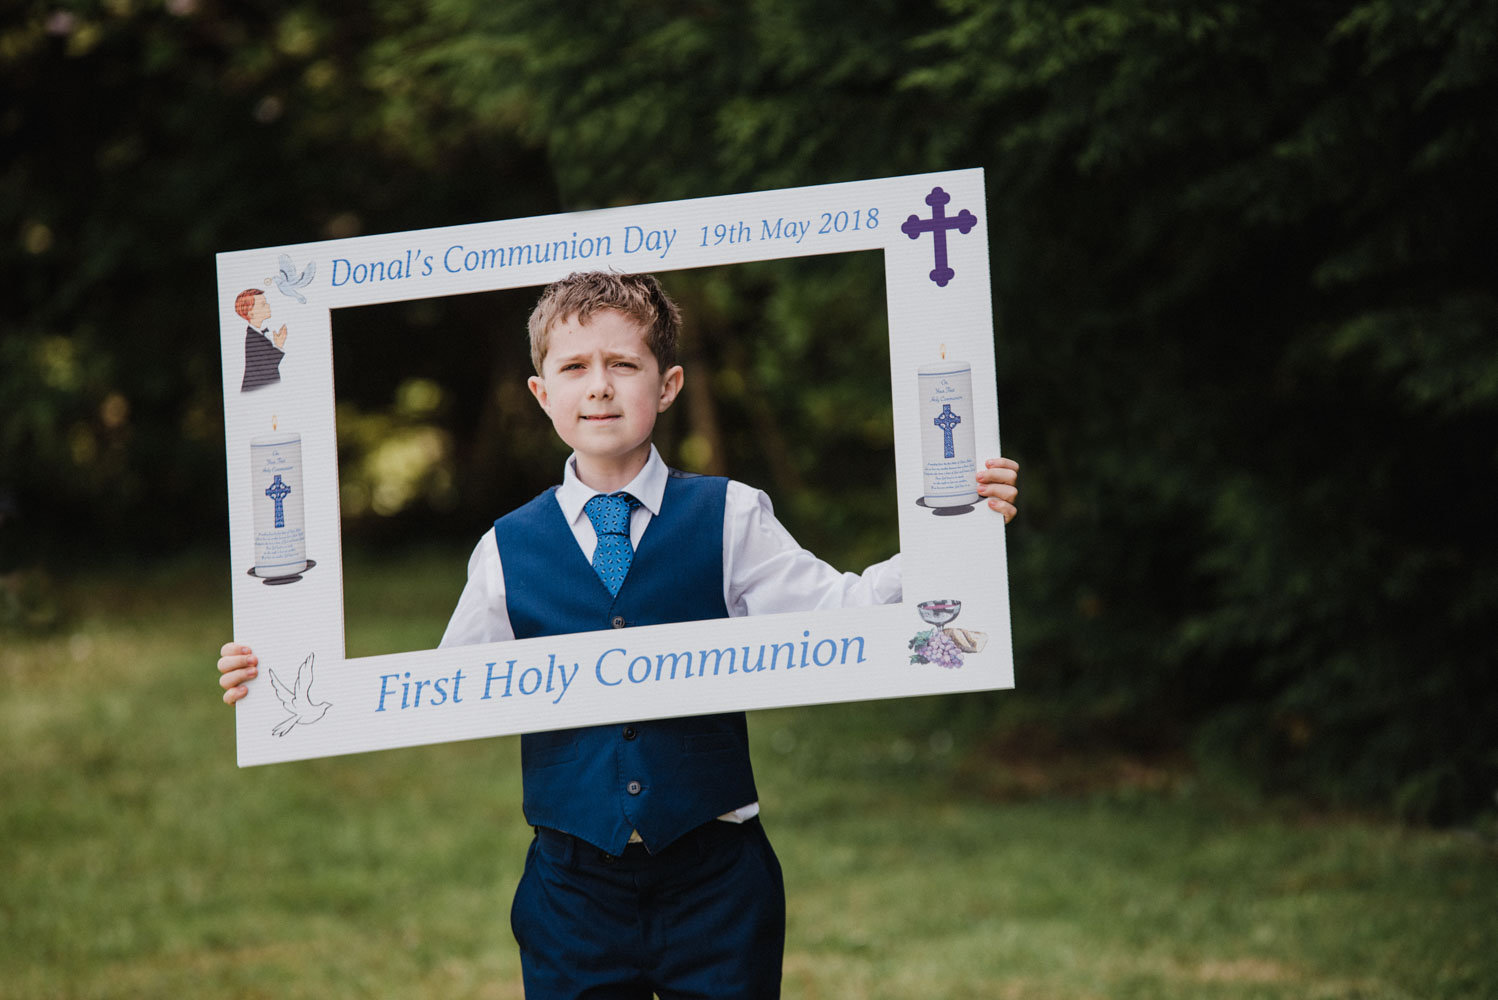 Donal and his Communion Day 19.05.18